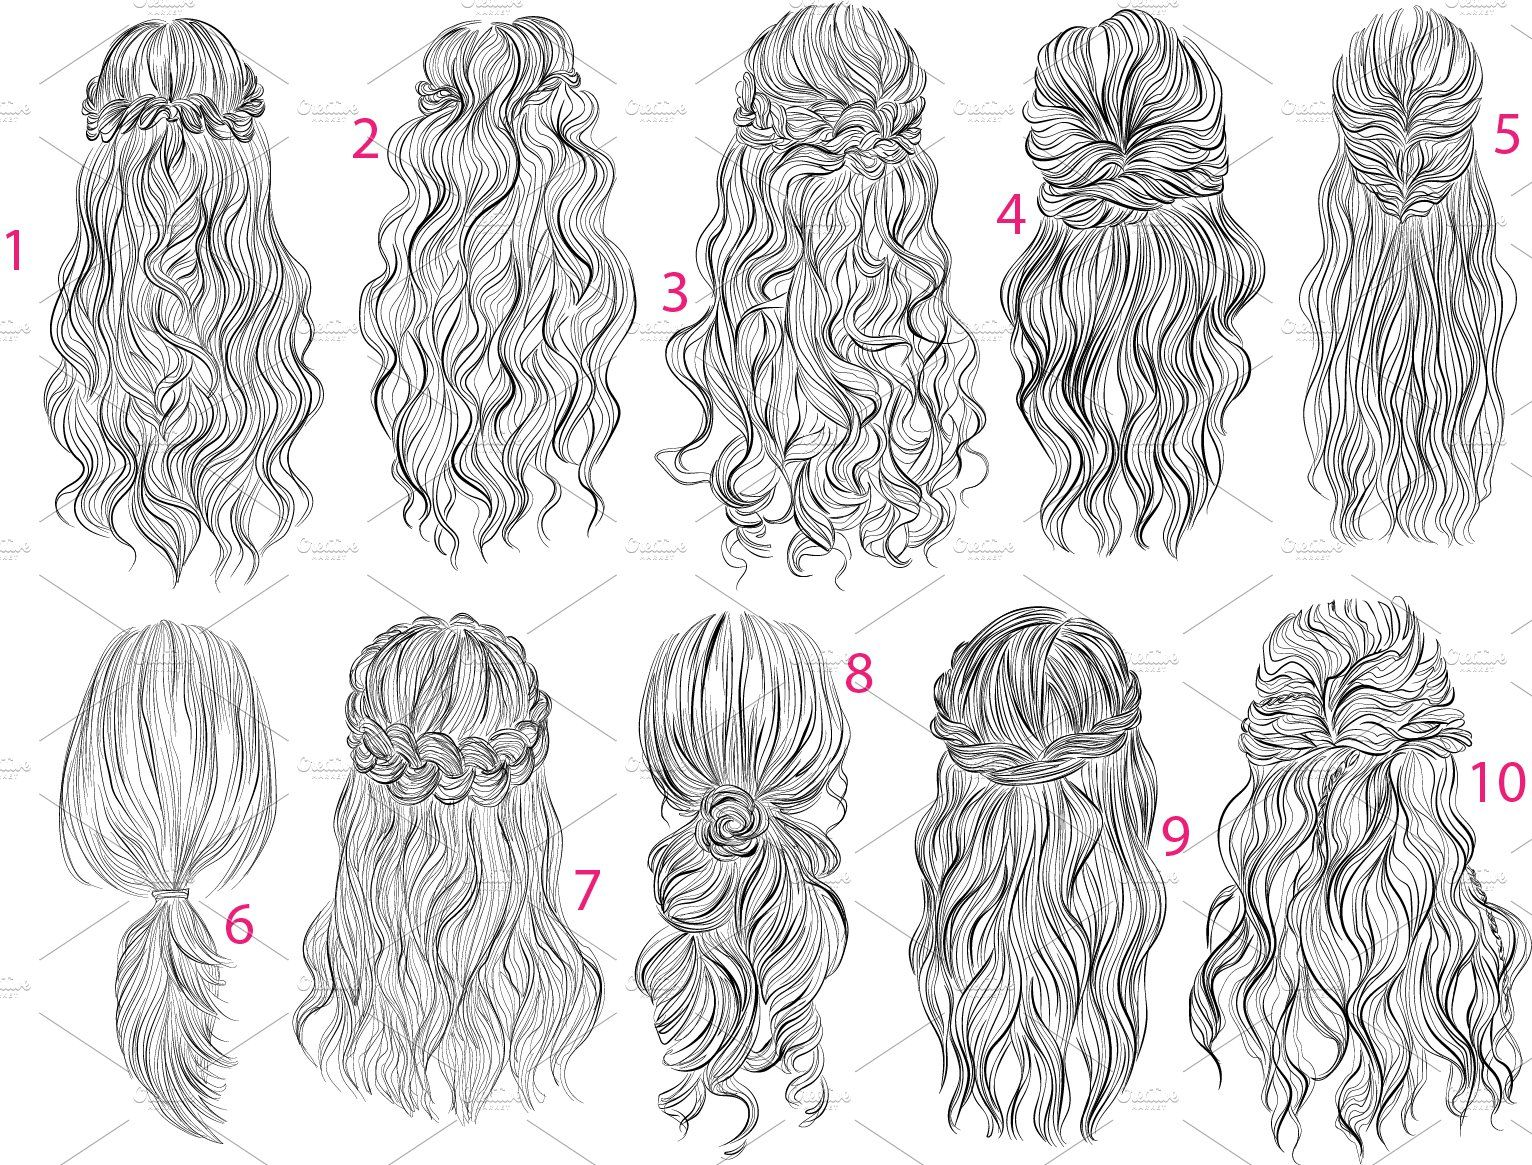 10 Long Romantic Hairstyles In 2020 Hair Sketch Anime Hair Hair Stylies